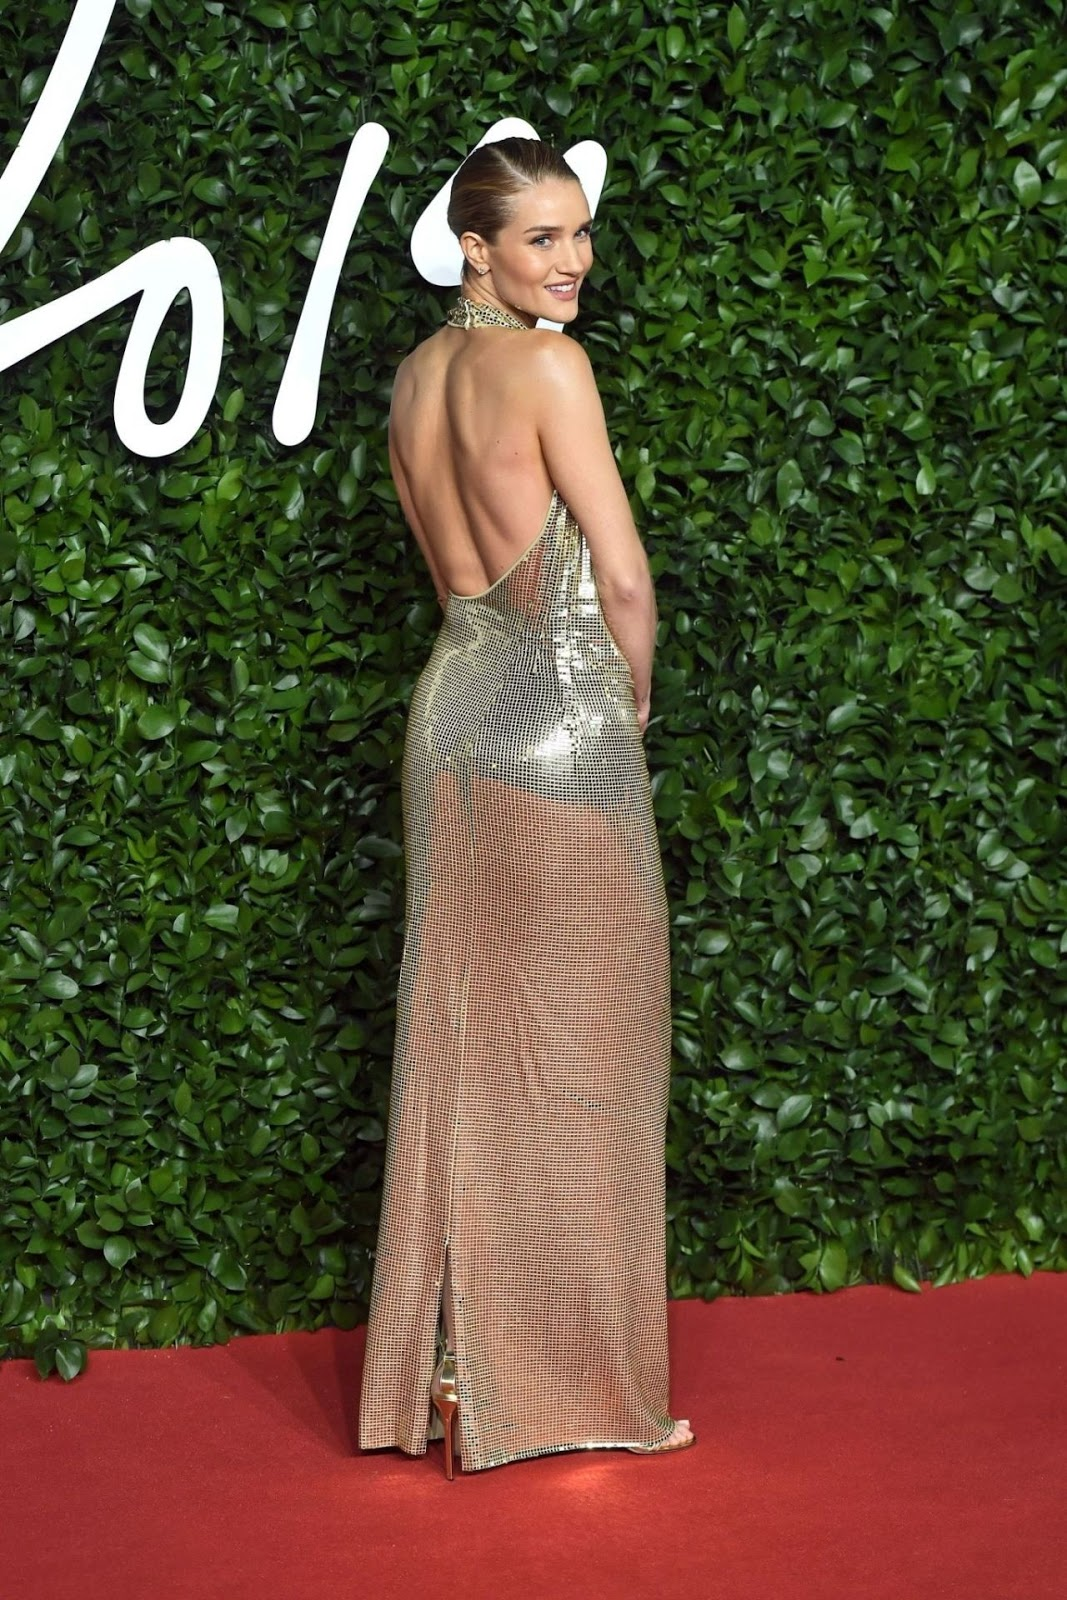 Rosie Hungtington Whiteley is braless and backless at the 2019 British Fashion Awards in London